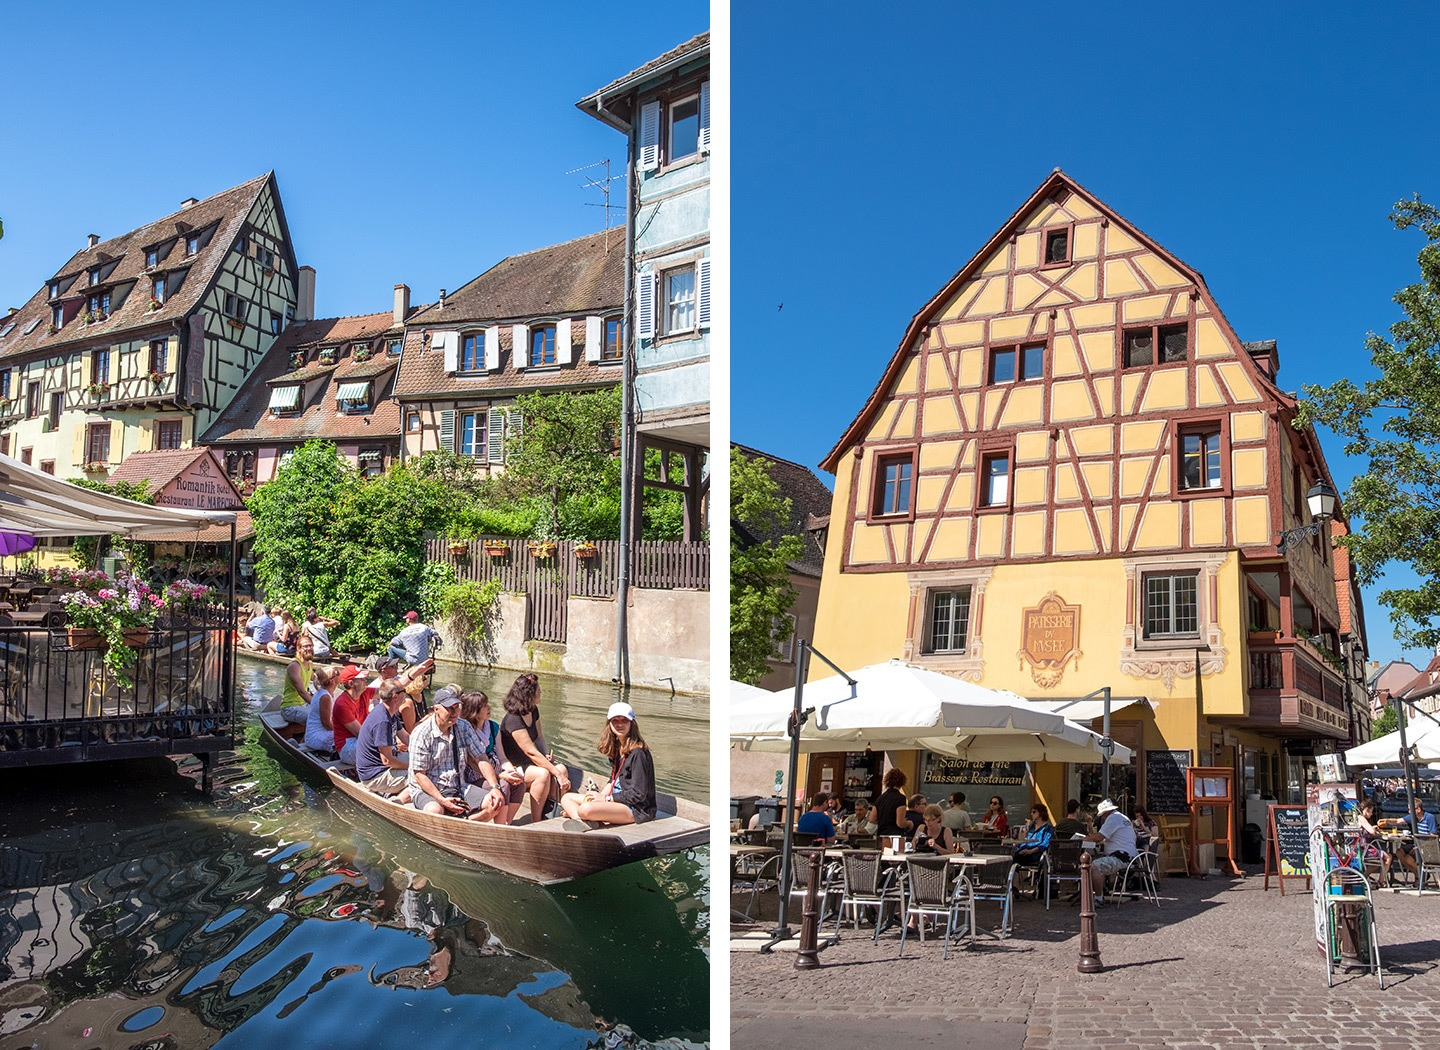 Canals and cafés in Colmar, Alsace